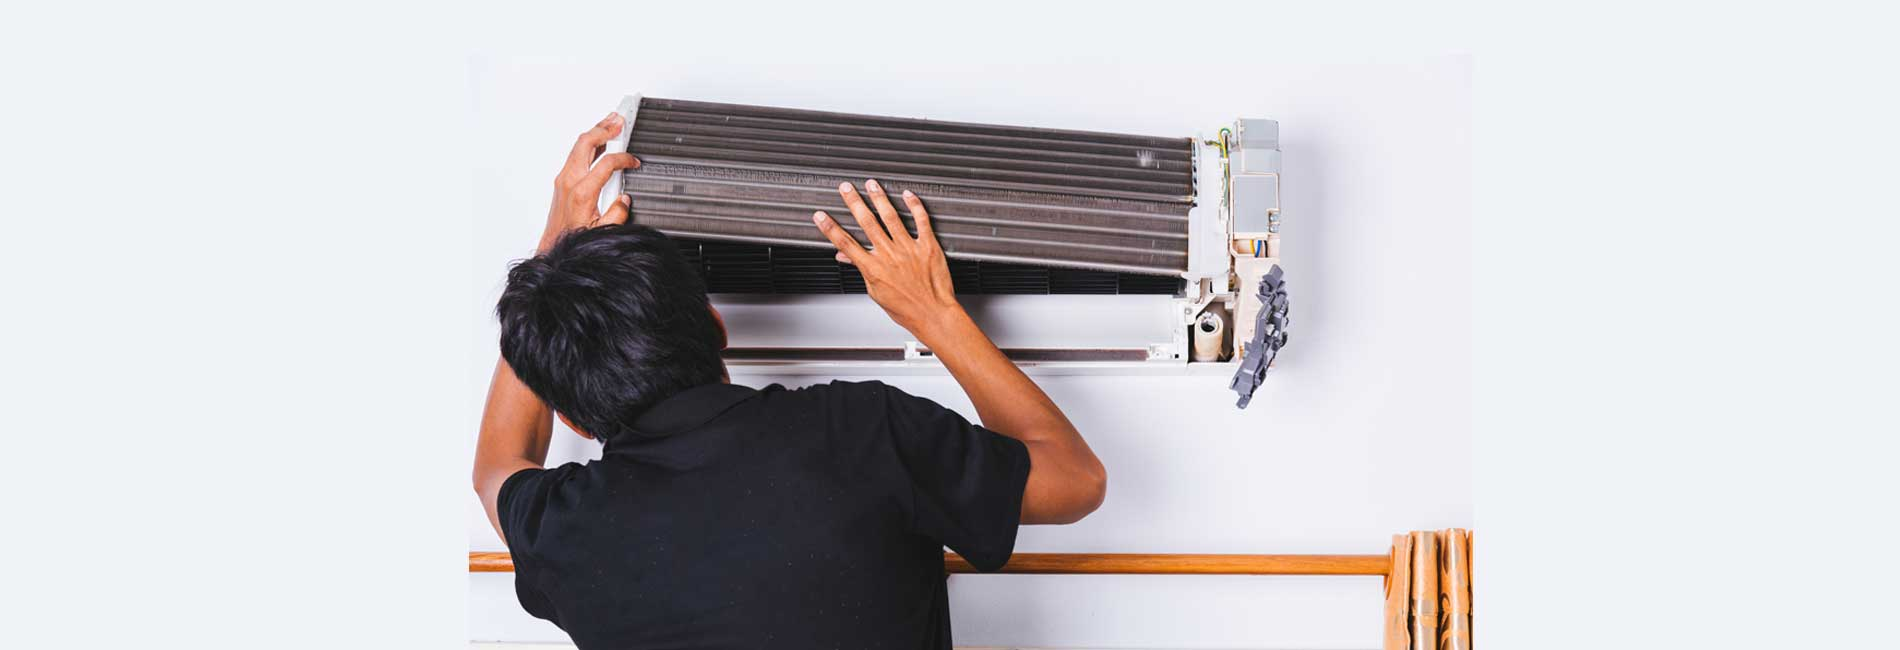 LG Split AC Uninstallation in Nungambakkam